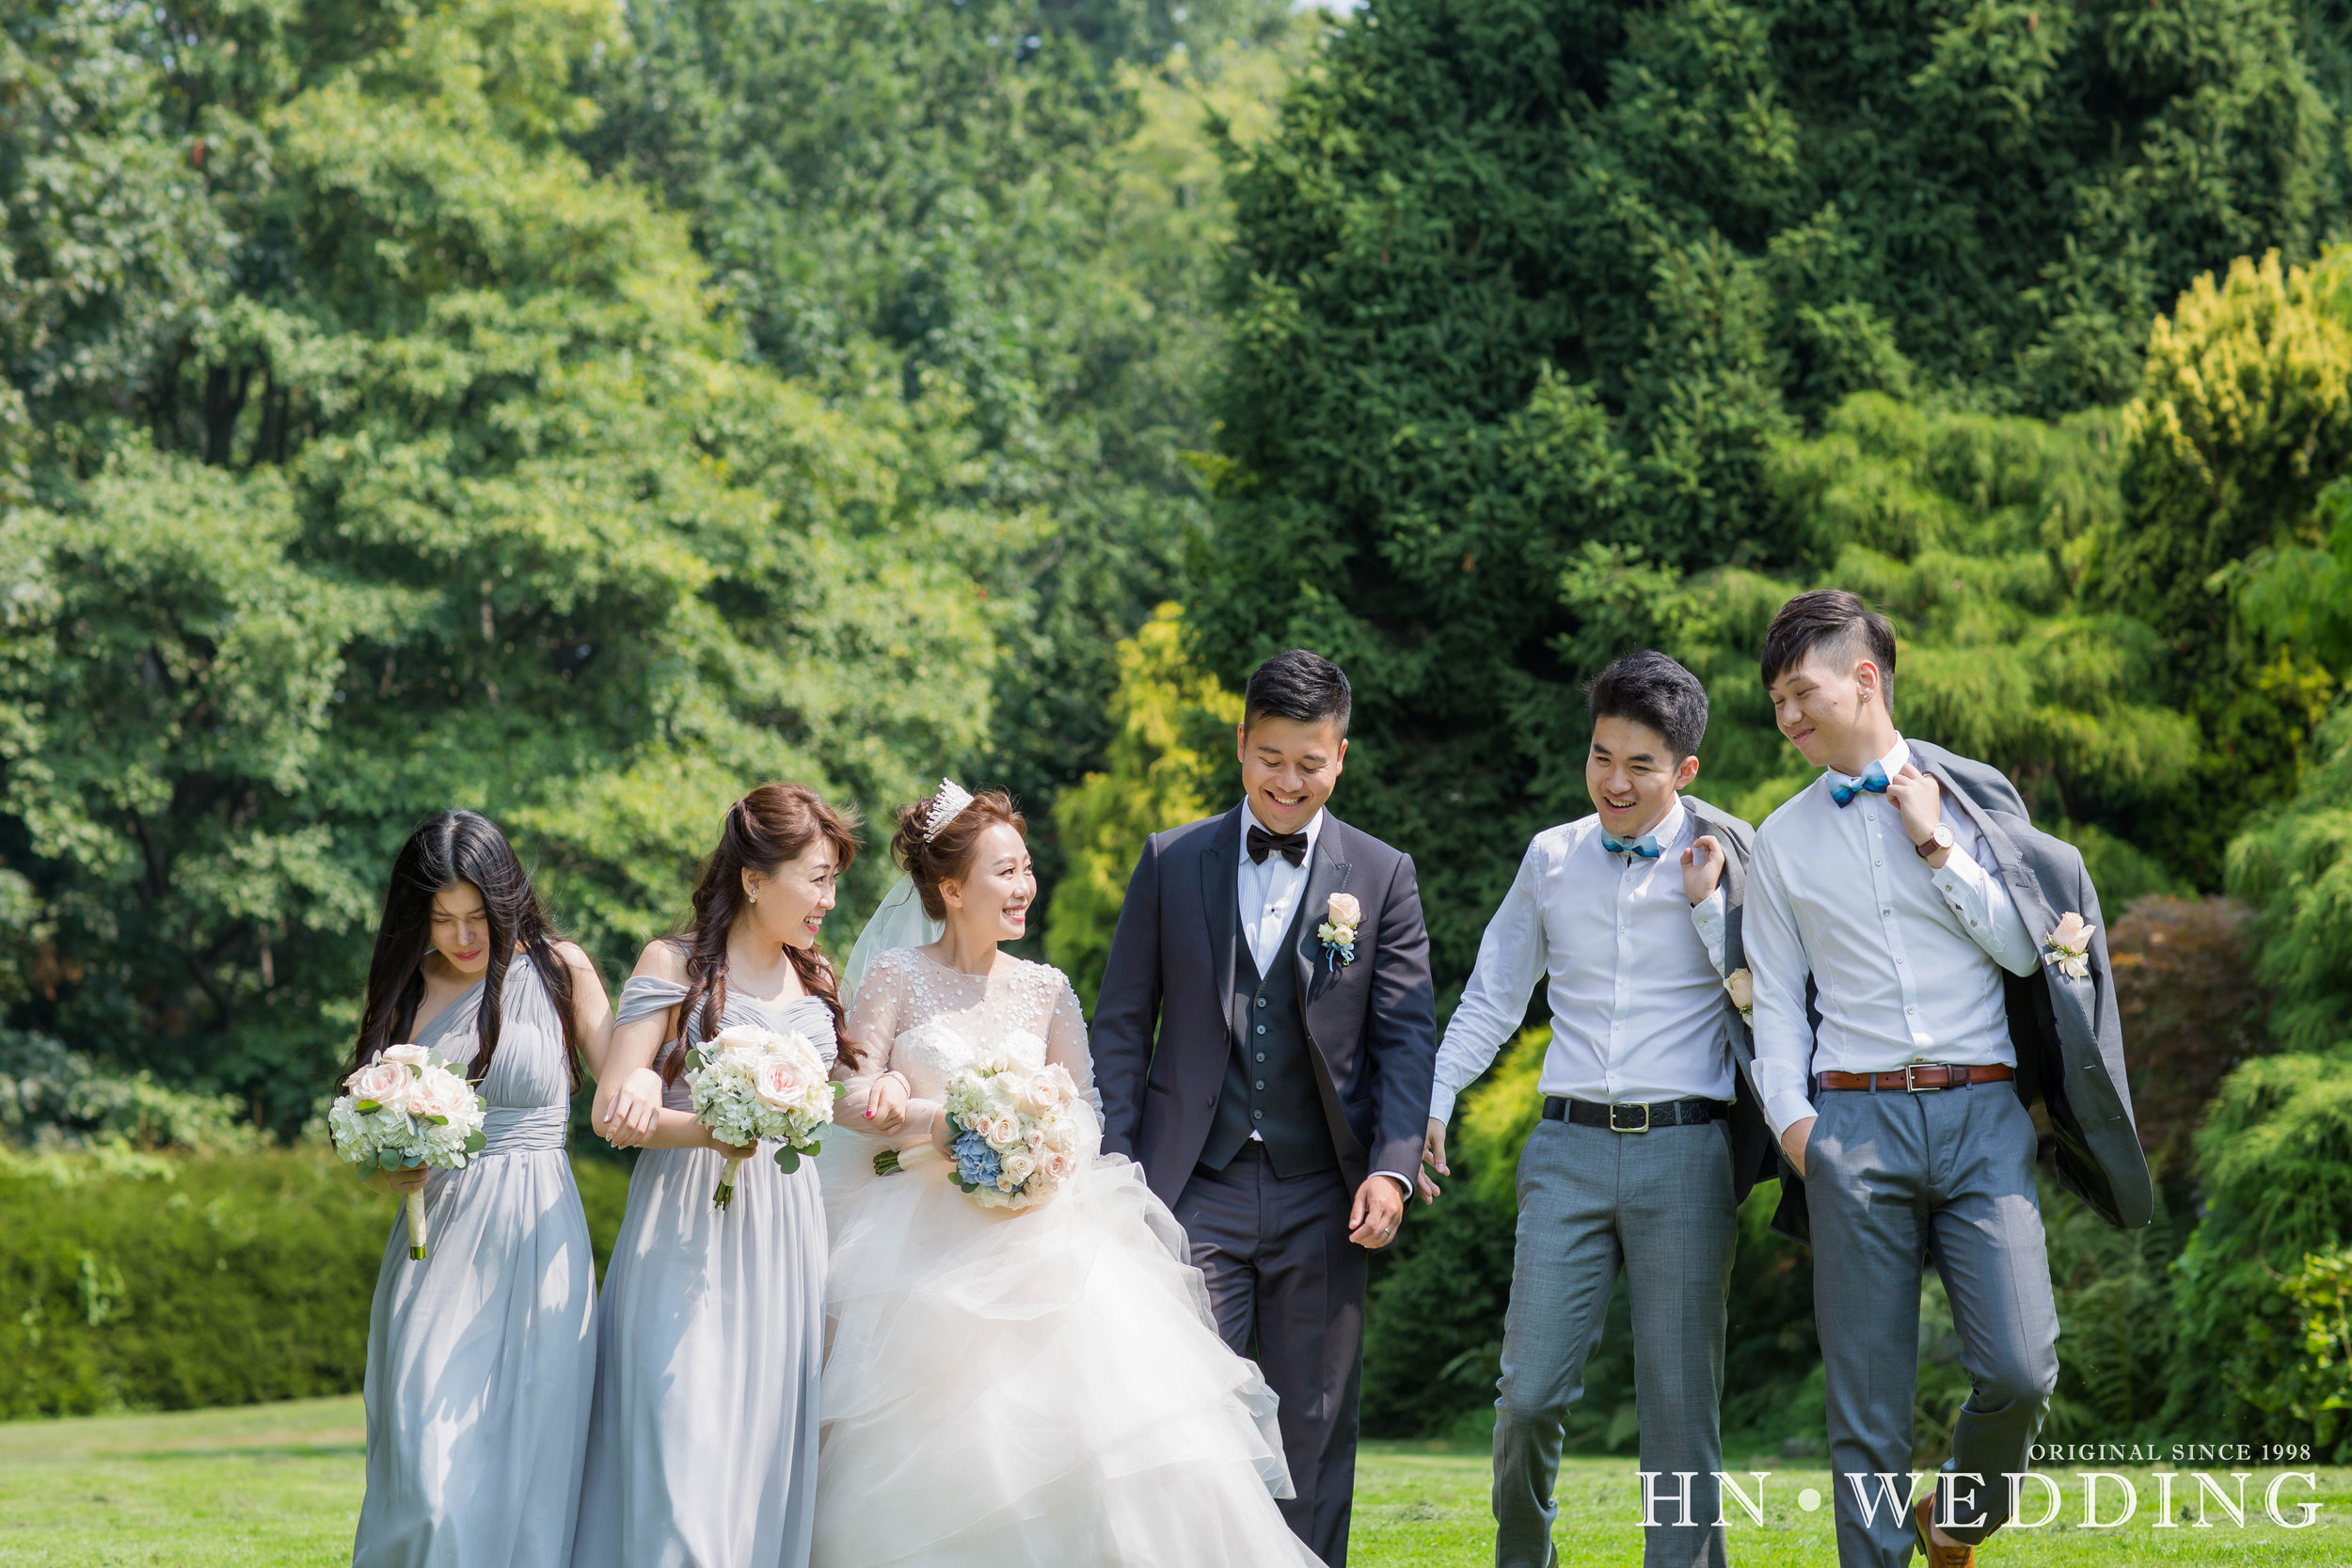 HNwedding20170811weddingday-47.jpg